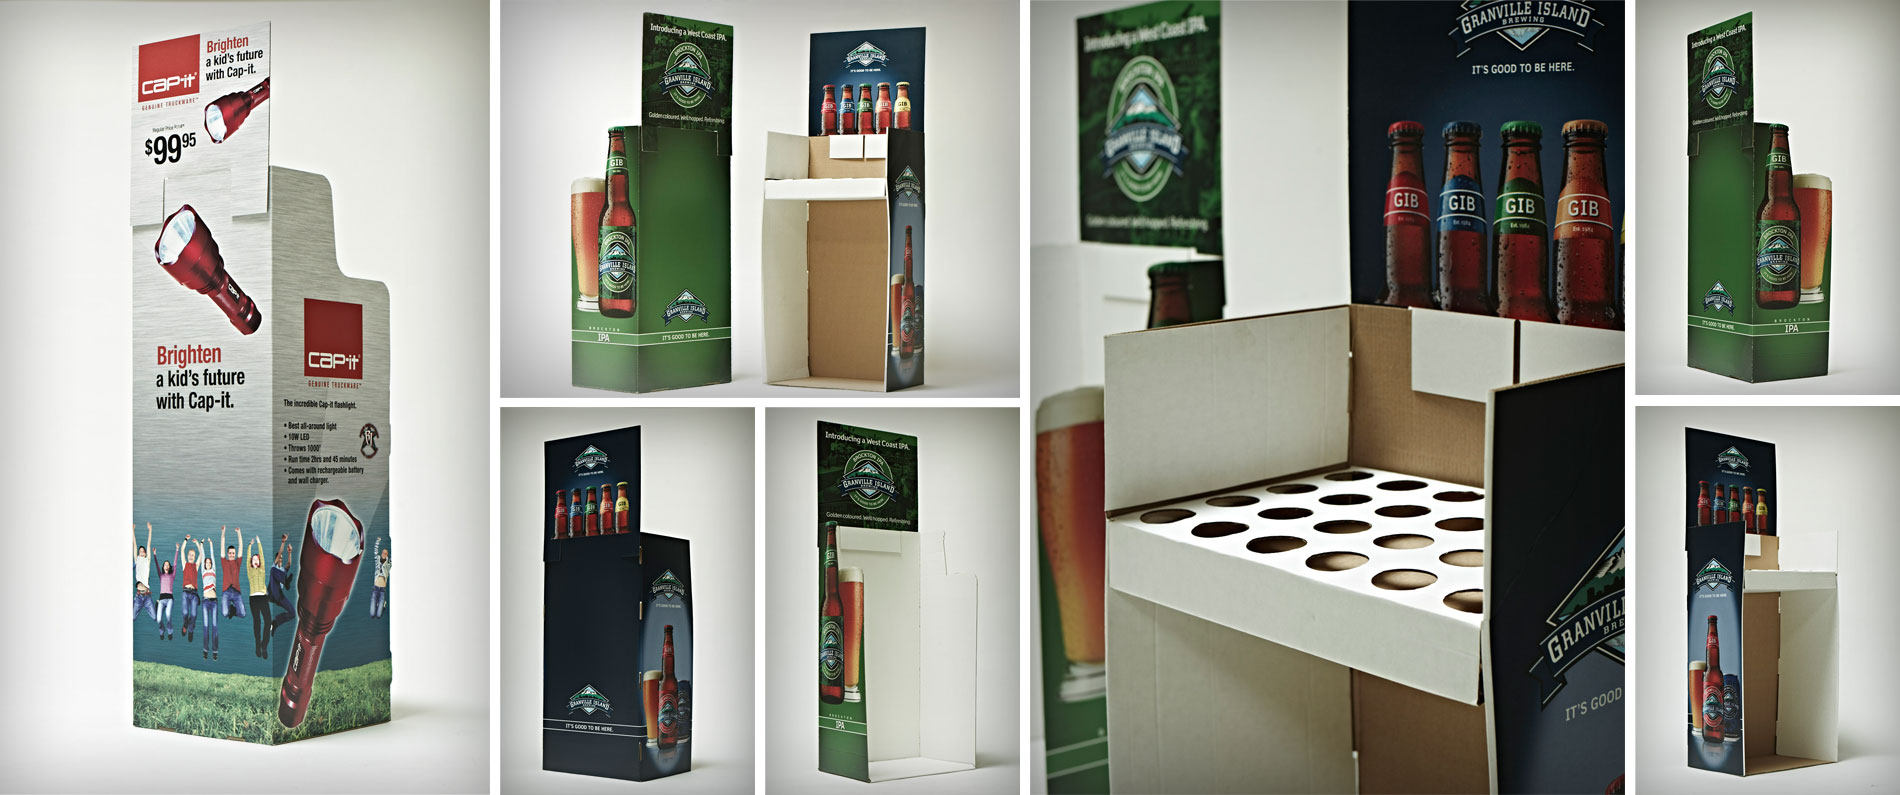 Custom point of purchase display for Granville Island Brewery